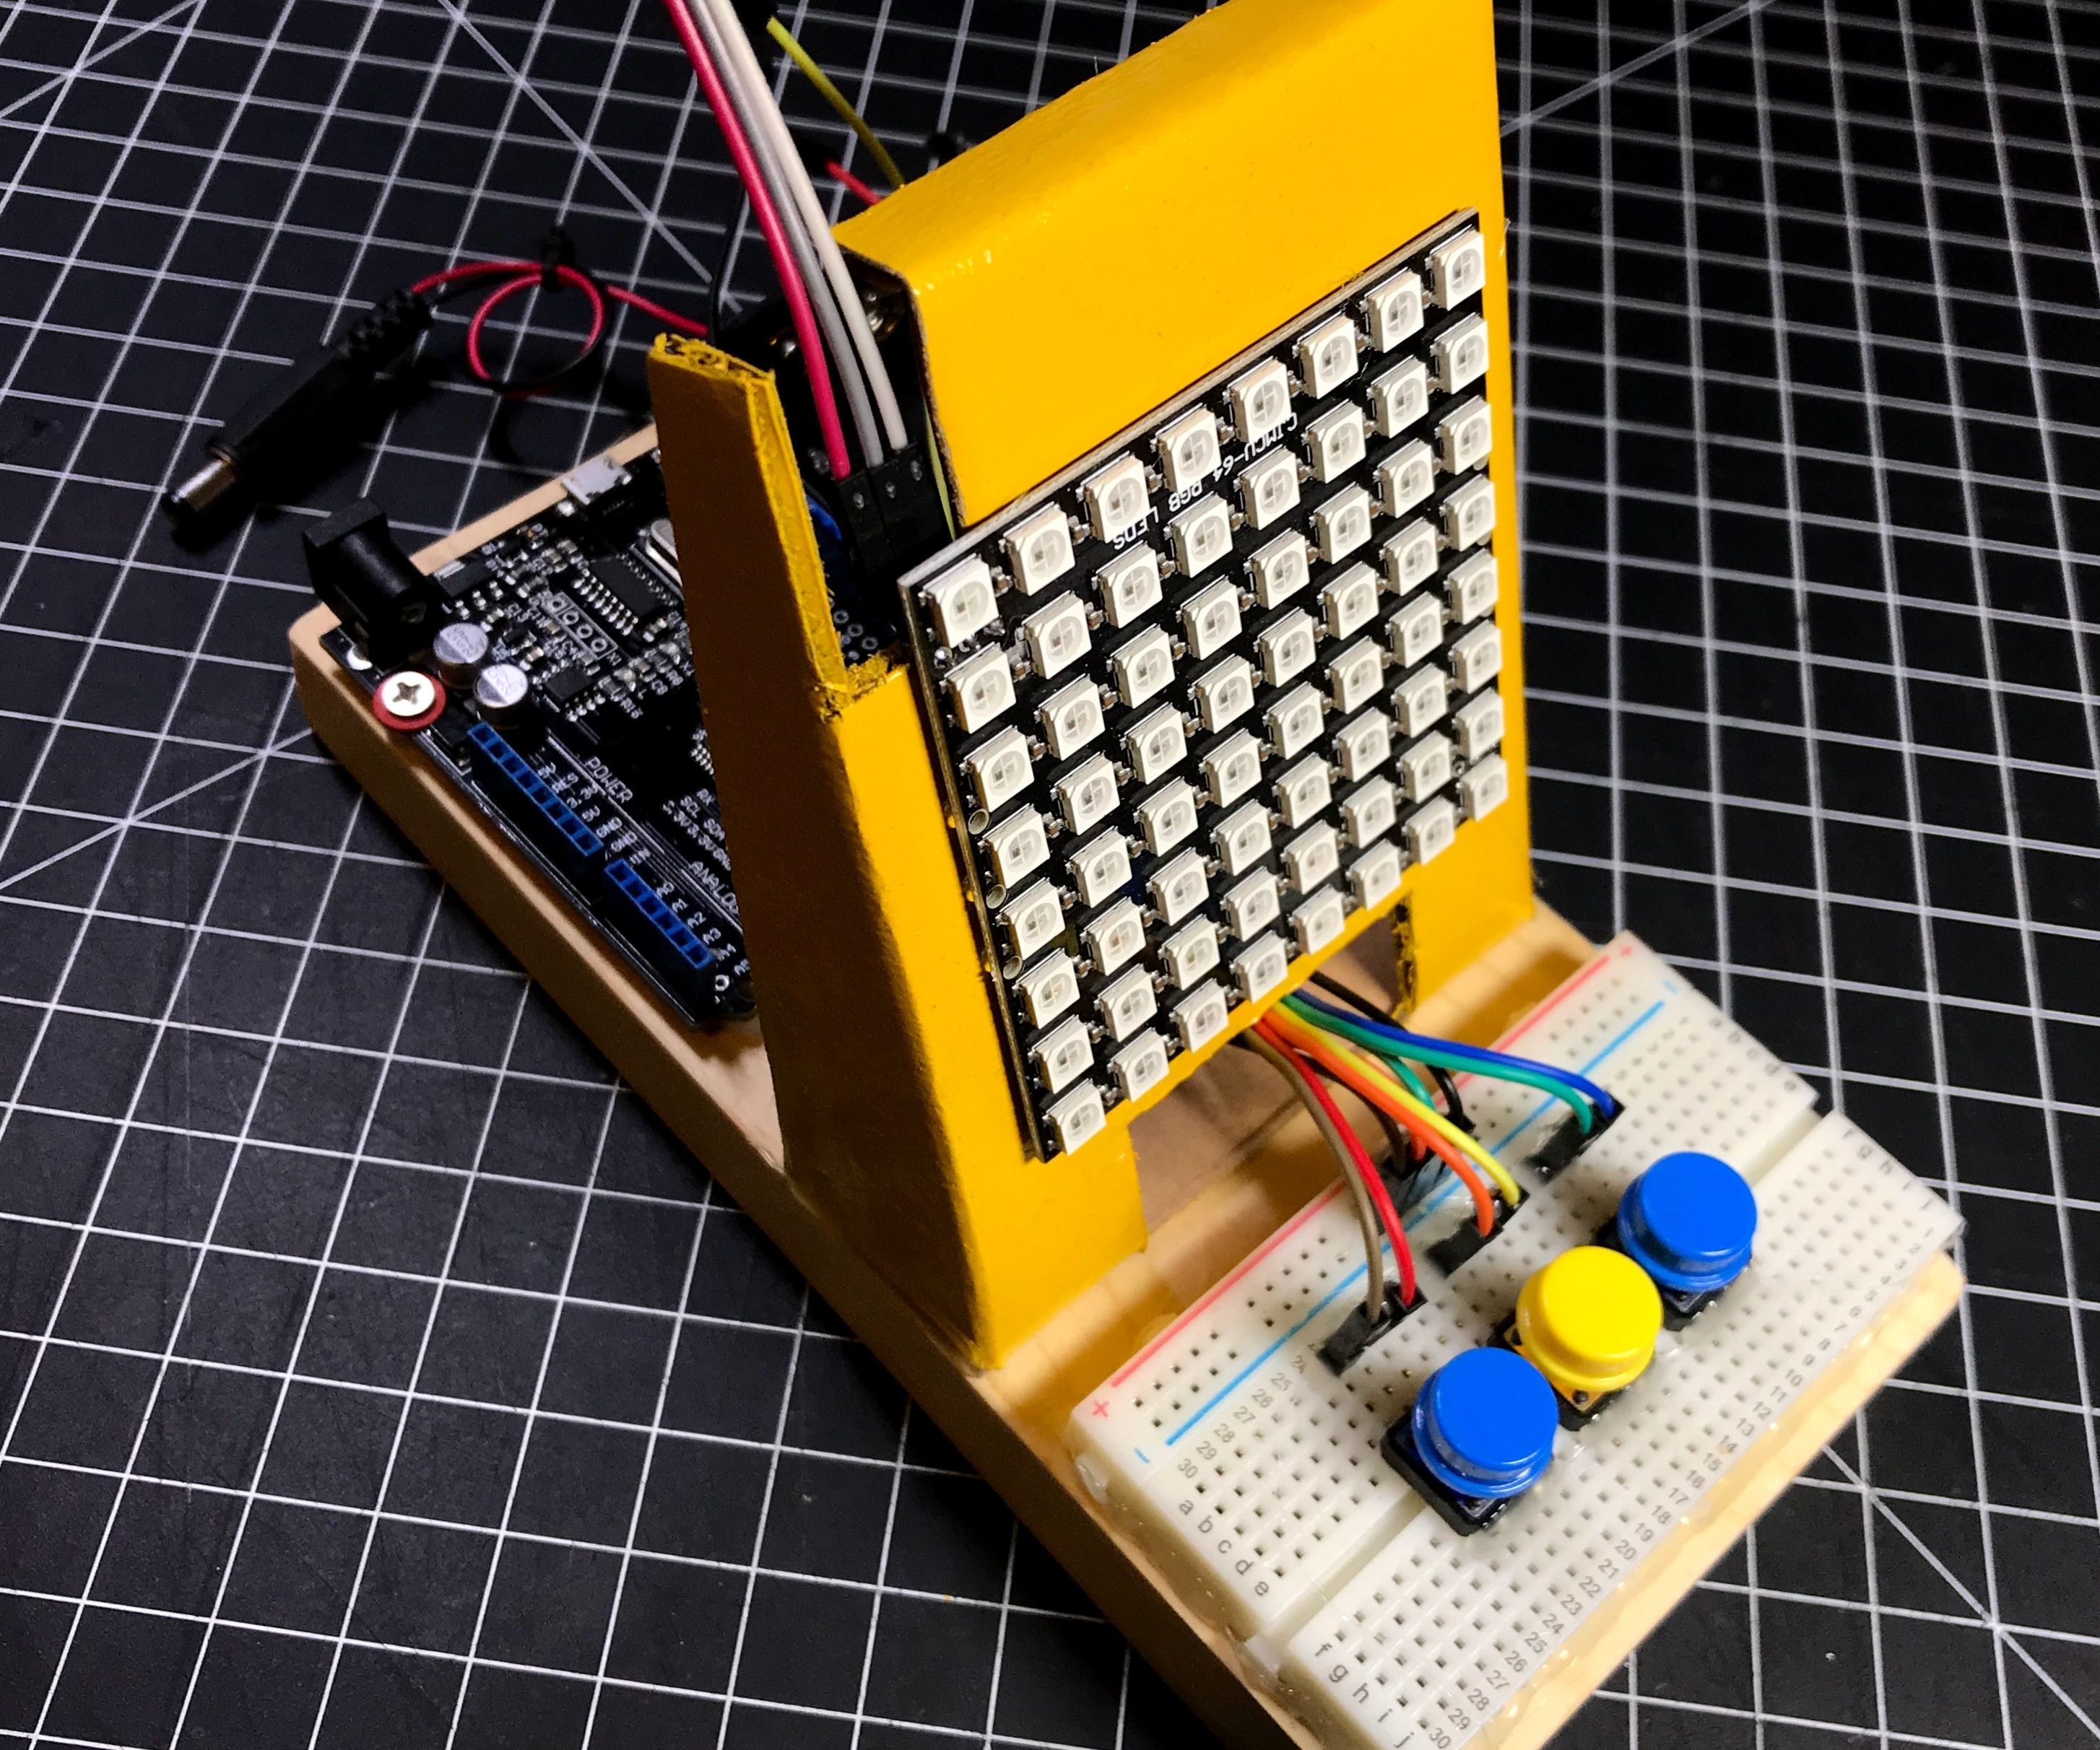 Connect 4 Game Using Arduino and Neopixel